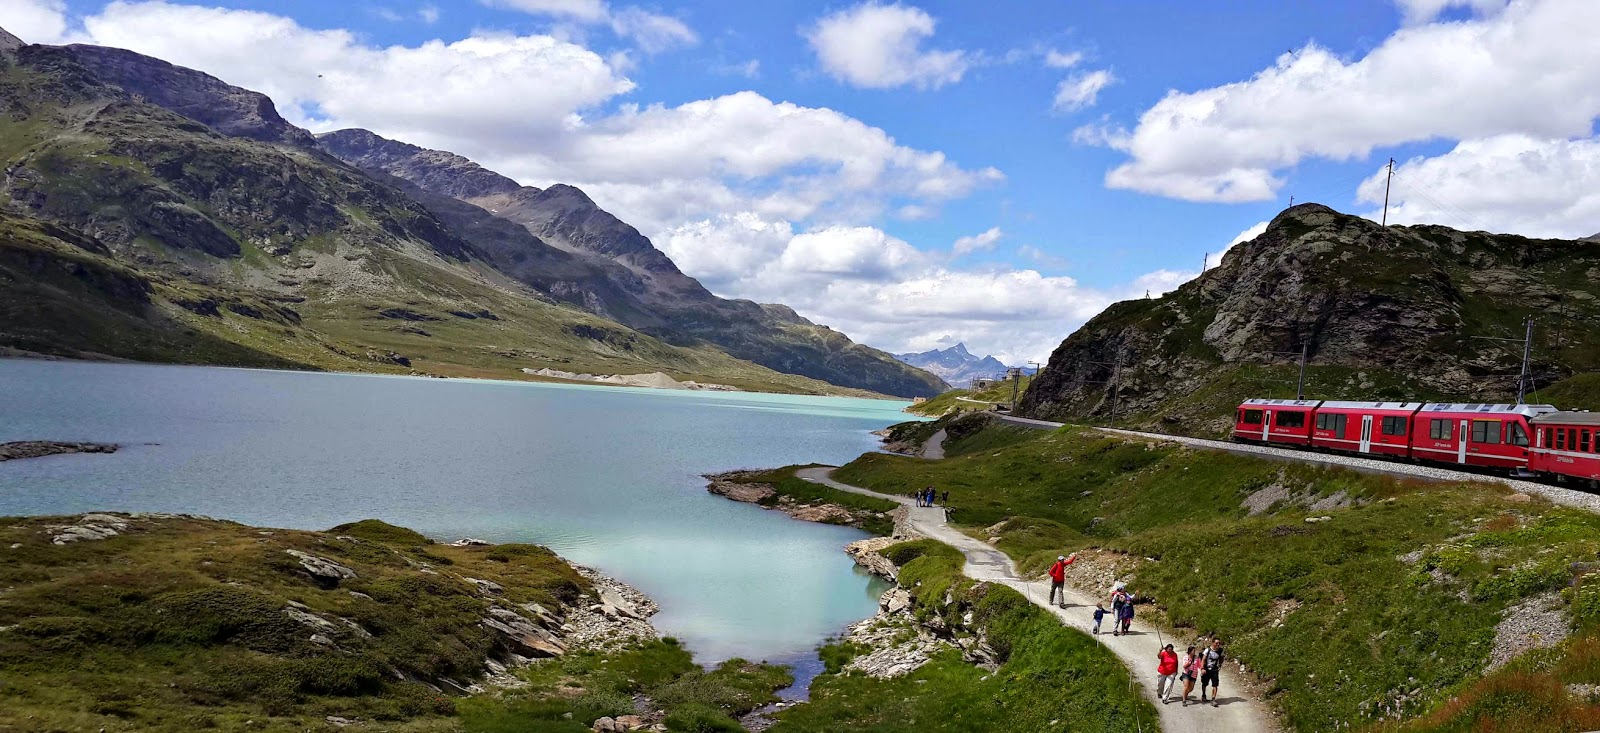 how to get to st moritz from milan